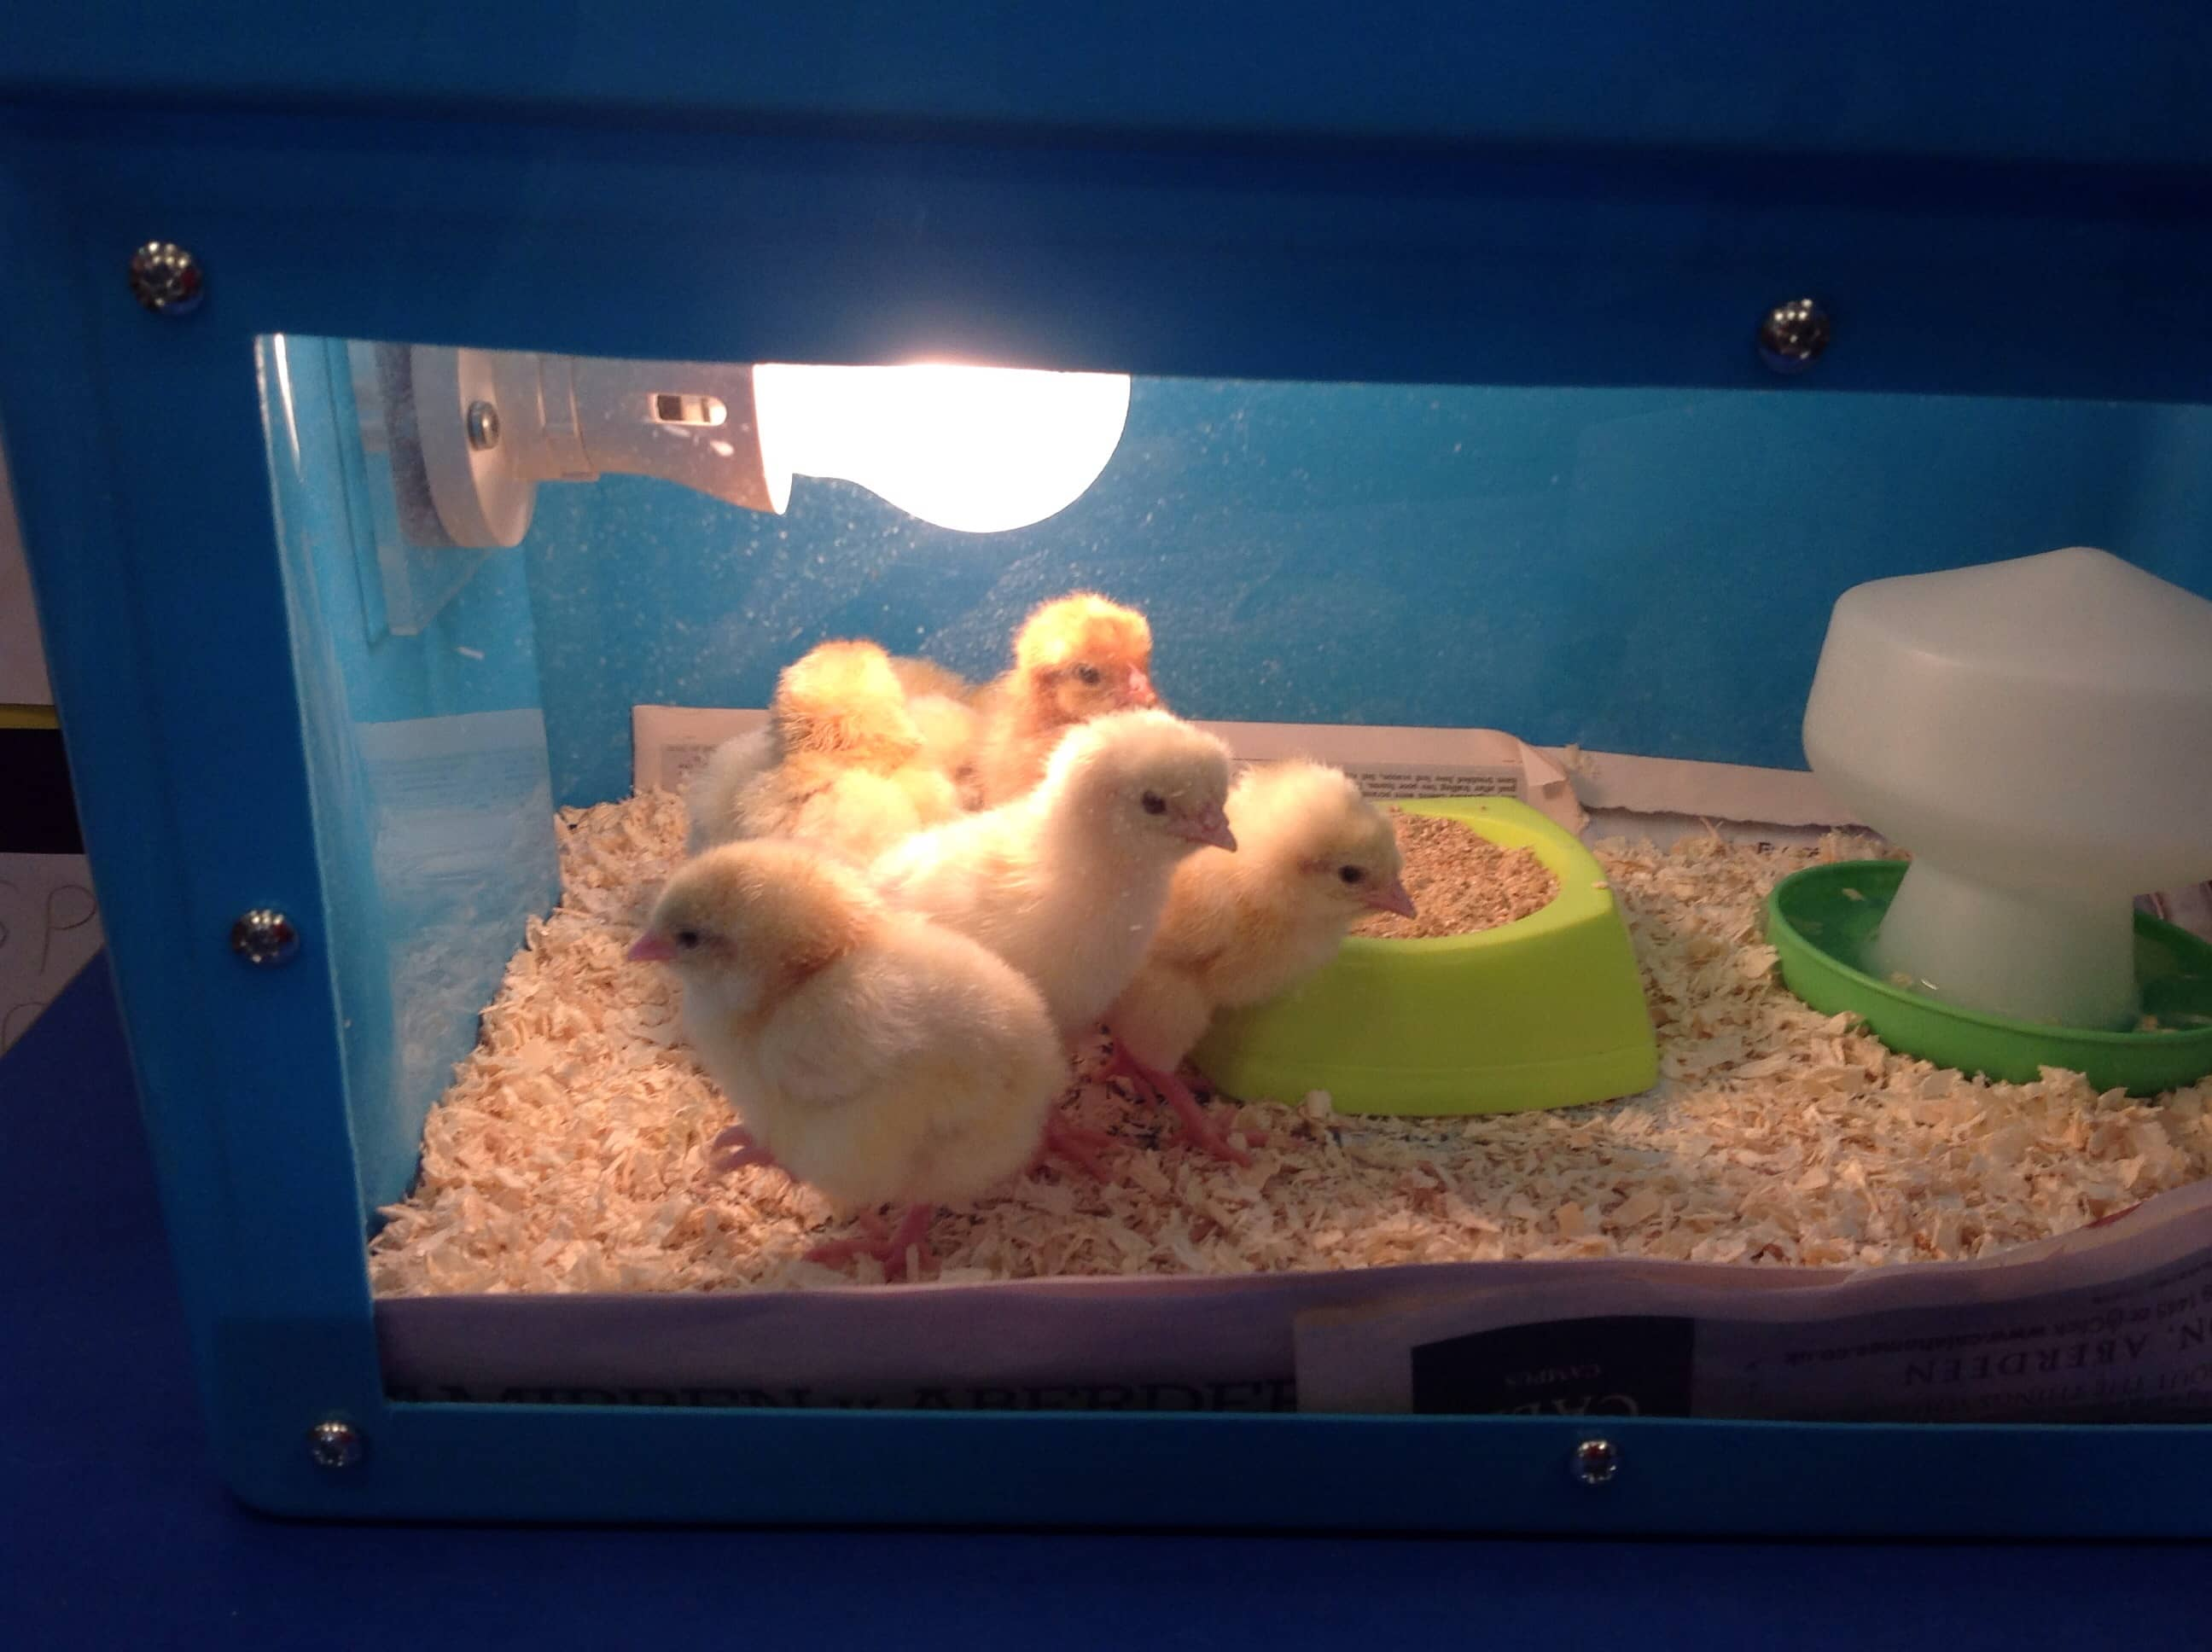 The cutest chicks in town!